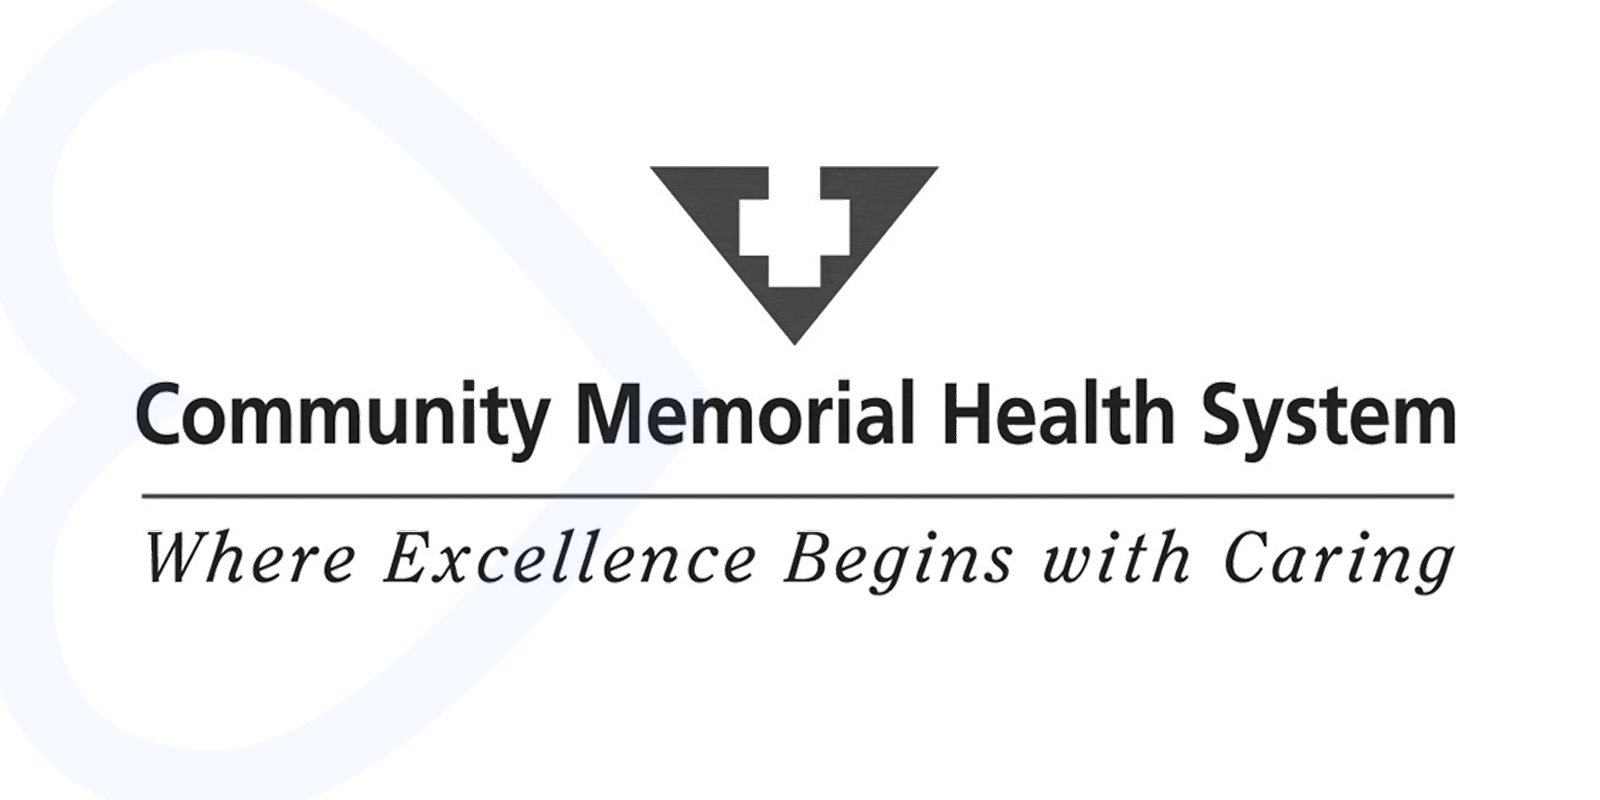 Community Memorial Health System  Pivots During COVID Crisis